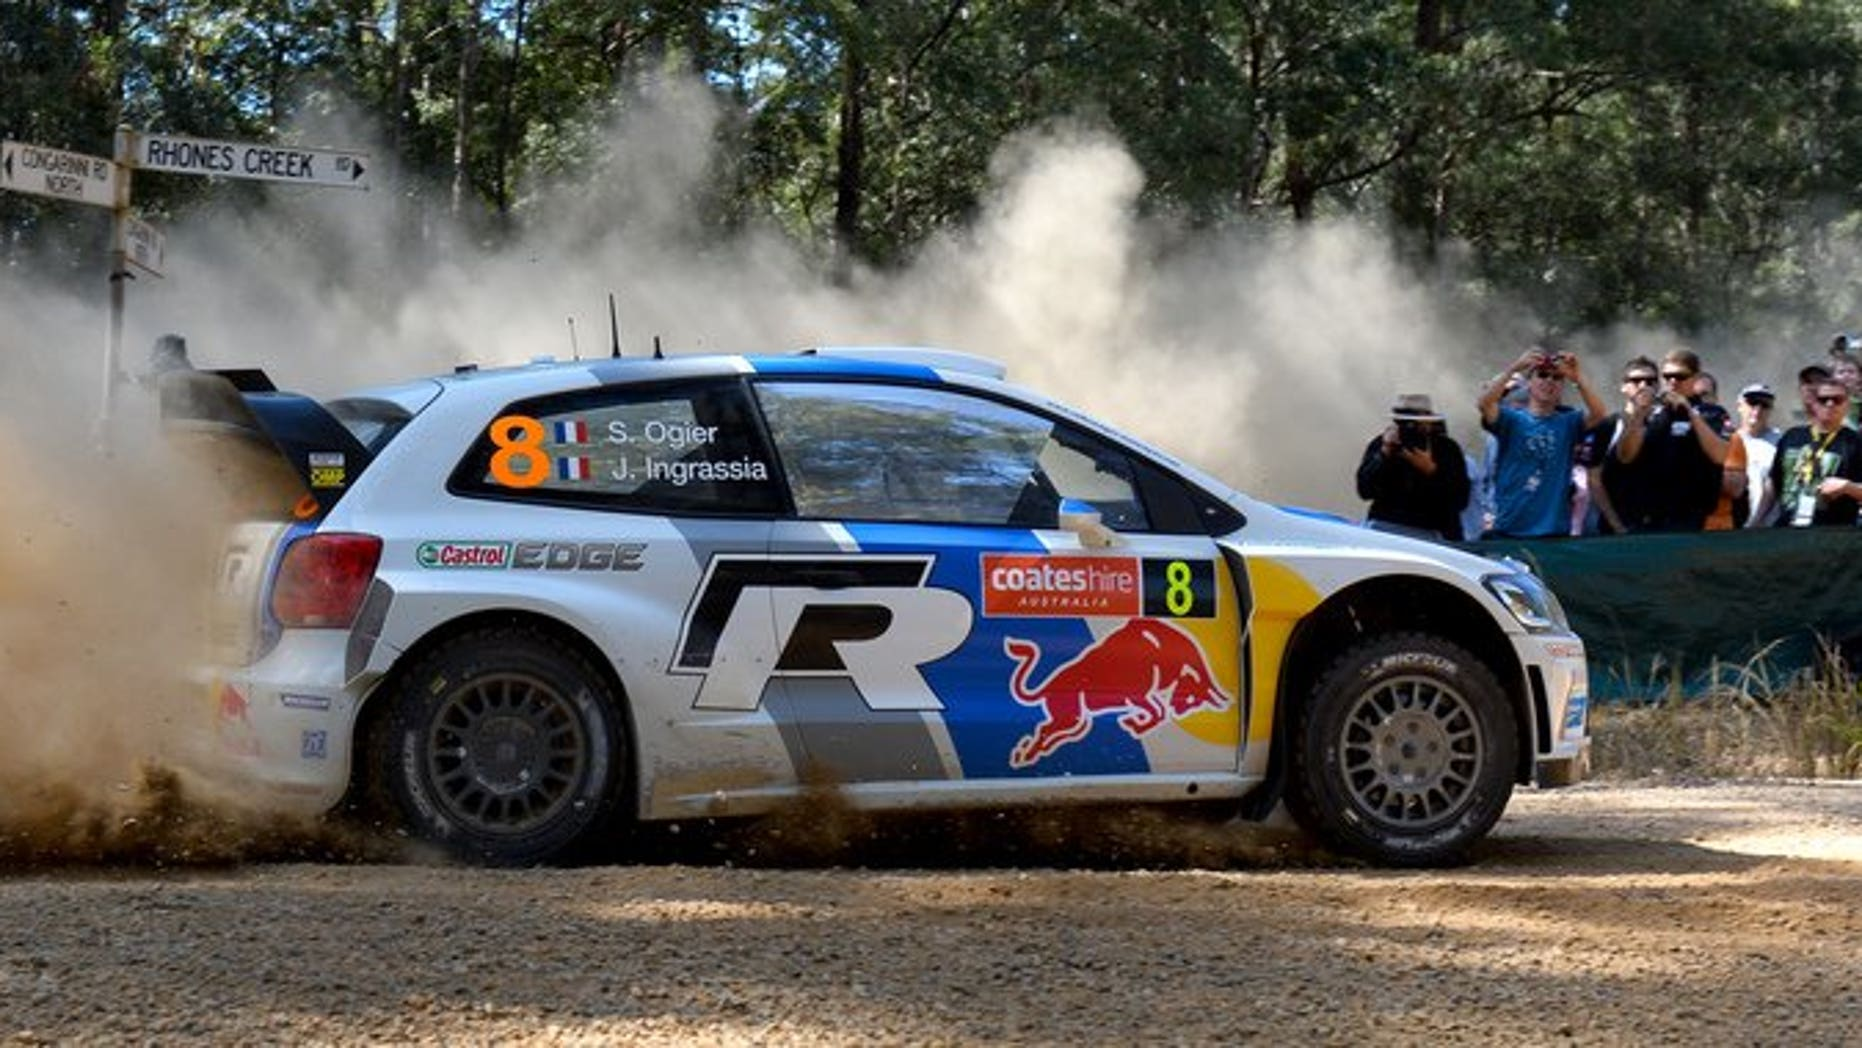 Volkswagen driver Sebastien Ogier of France slides his car through a corner in Rally Australia in the World Rally Championship (WRC) in Coffs Harbour on September 14, 2013.